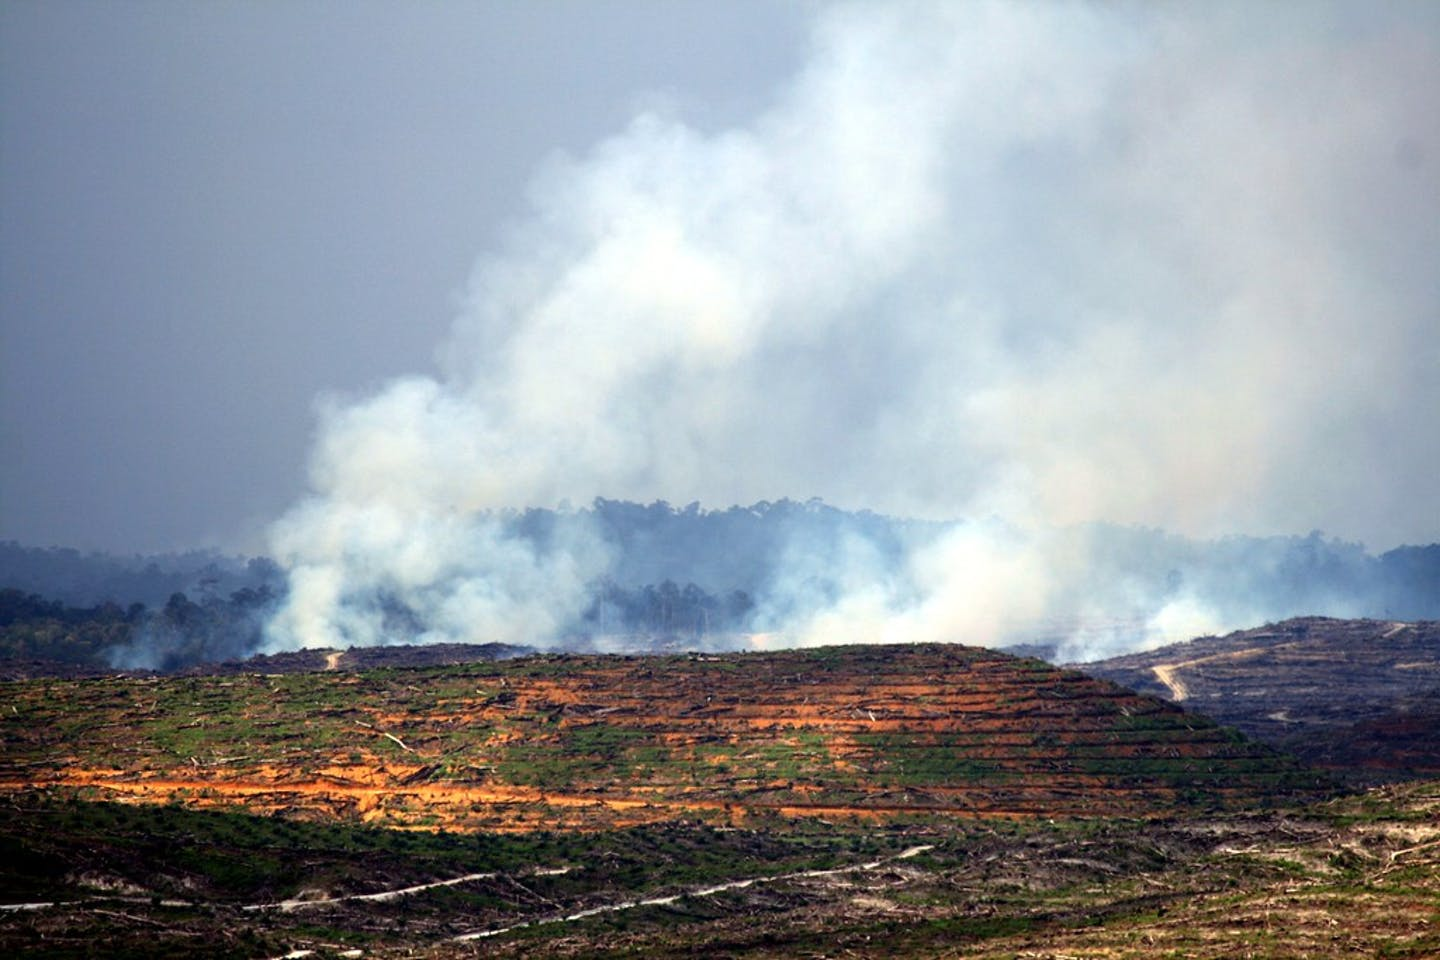 Forest fires in west Kalimantan2